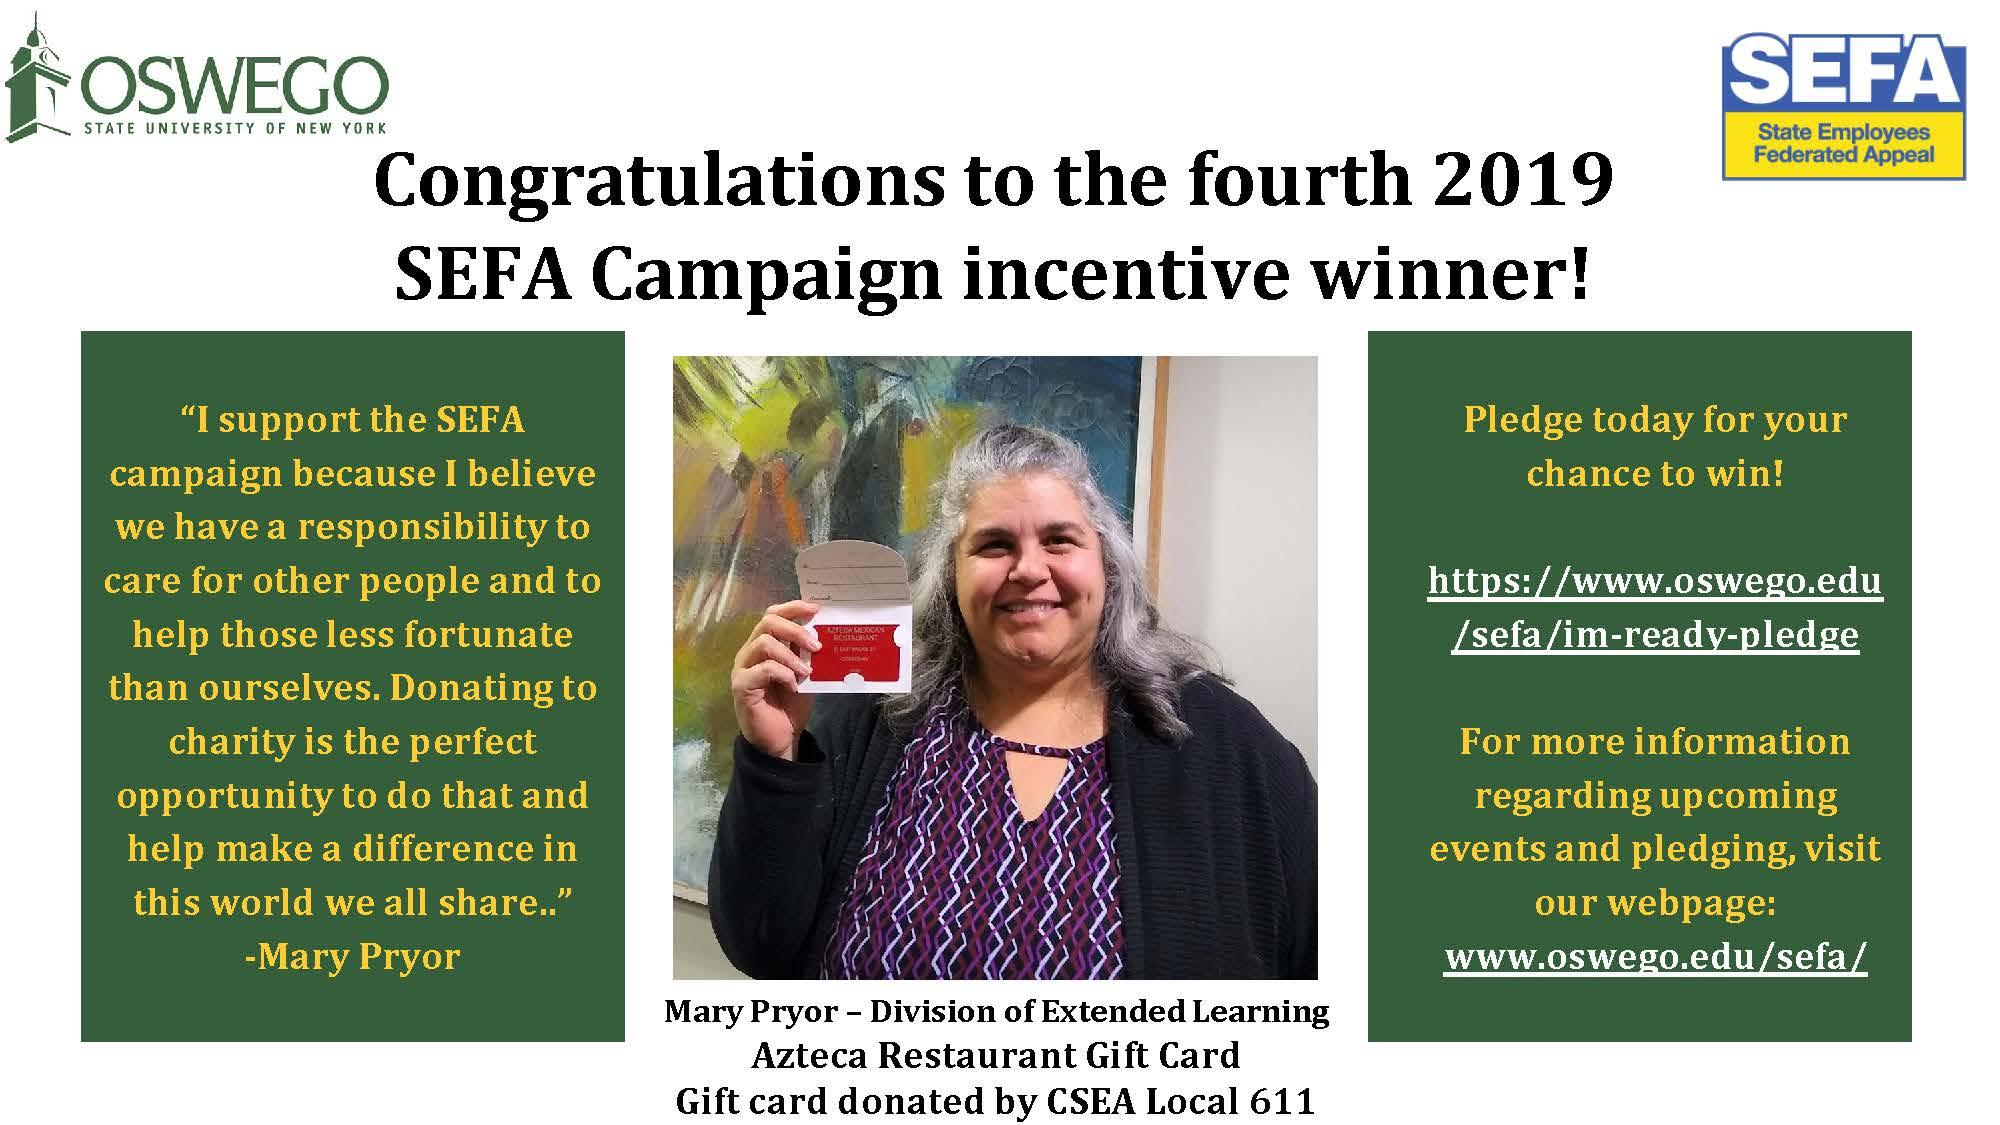 SEFA Incentive Prize Winner #4 - Mary Pryor